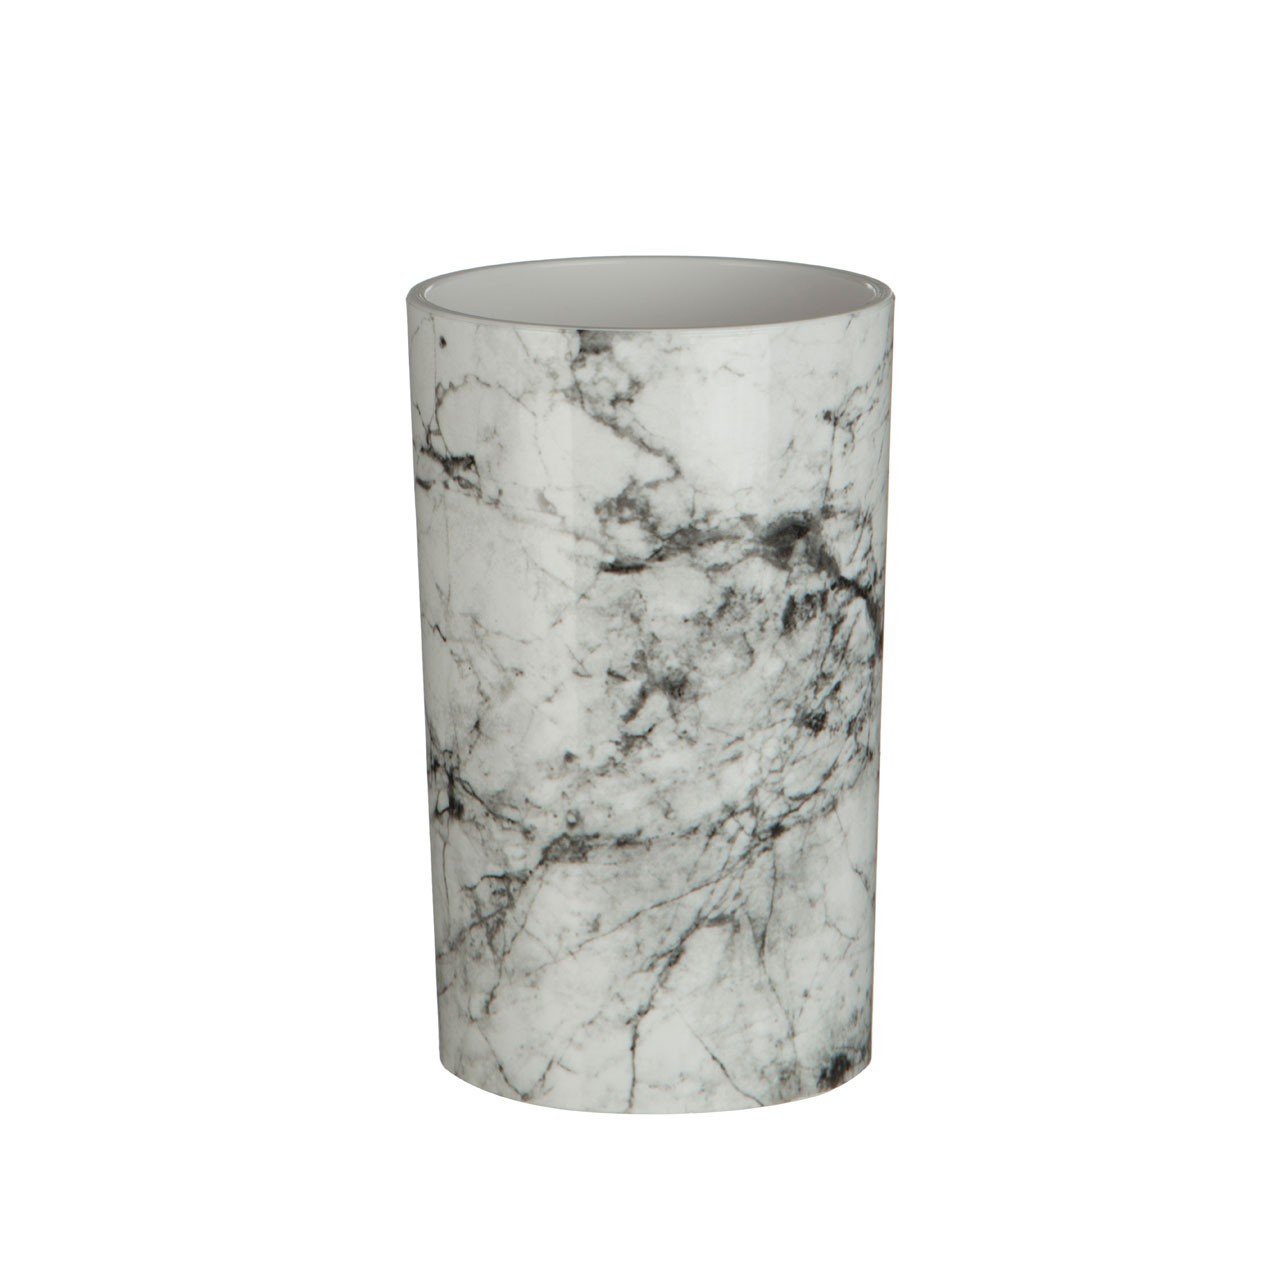 Prime Furnishing Rome Marble Effect Tumbler, ABS Plastic